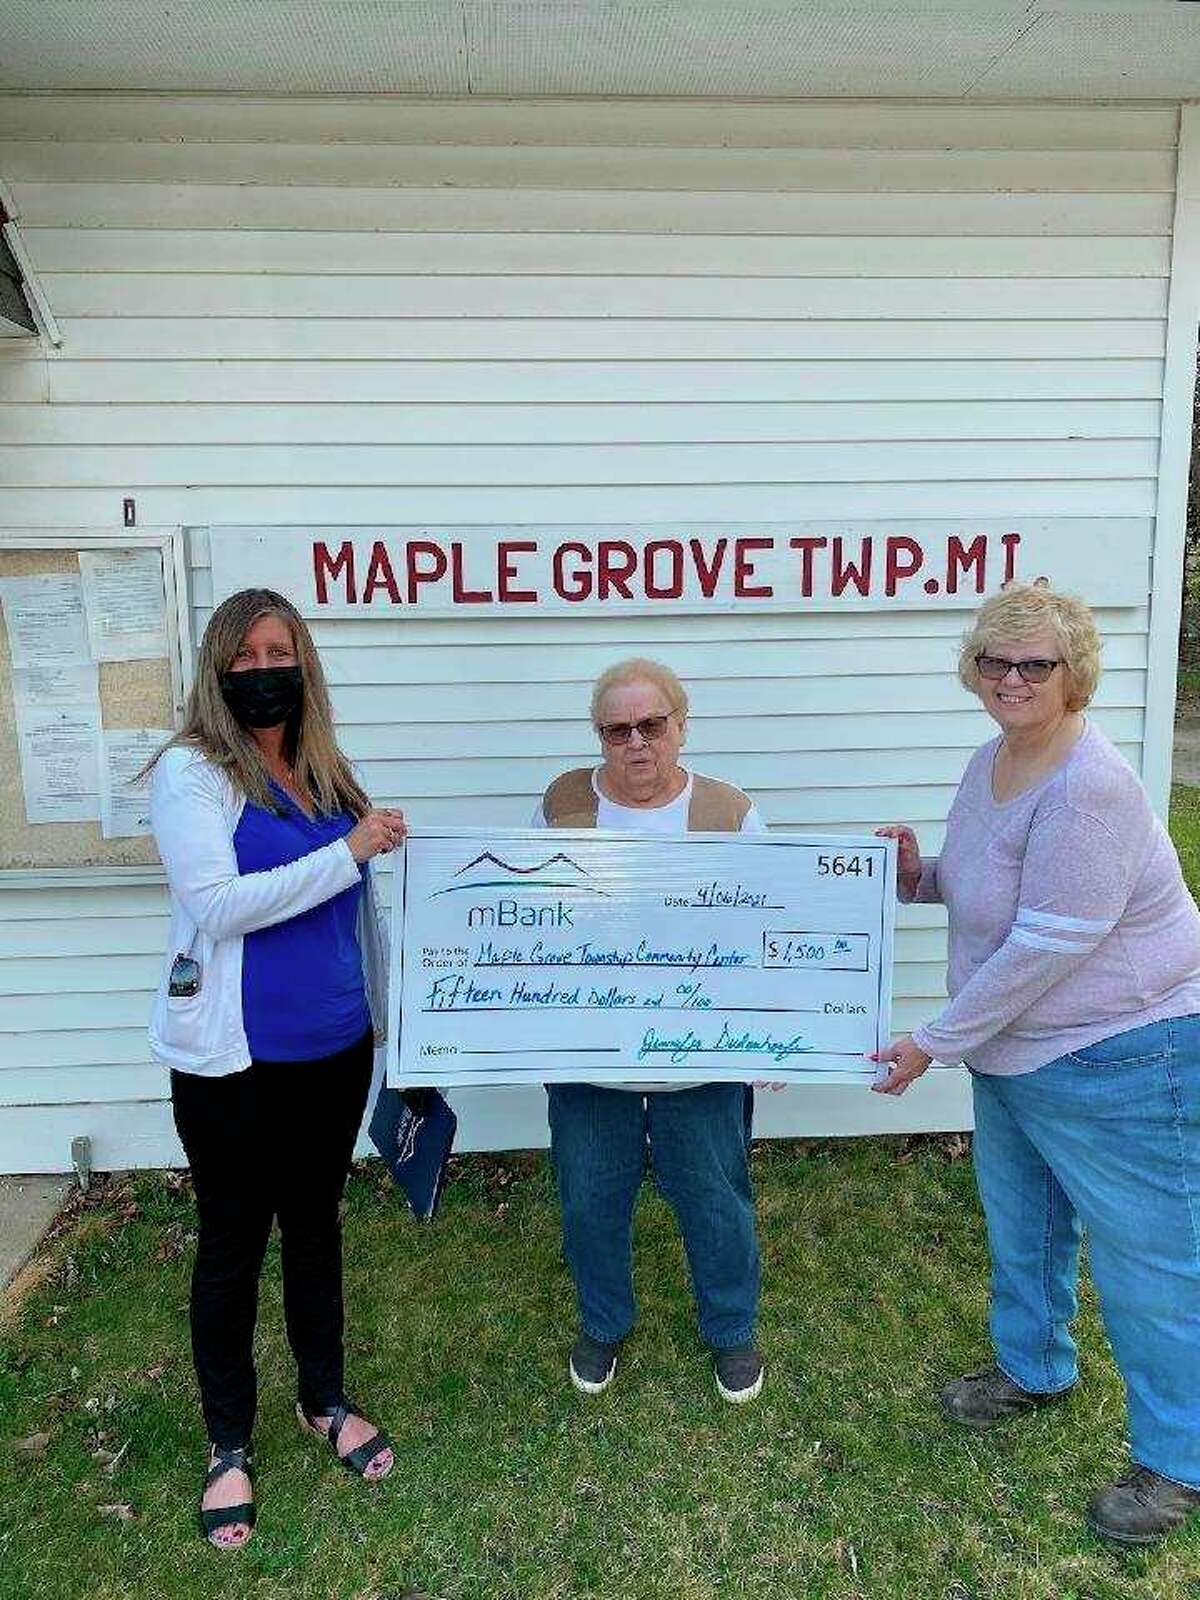 A donation made by mBank for$1,500 is presented by bank manager Lora Tennant to Maple Grove Township clerk Fran Beldo (center) and treasurer Cathy Jeskowski in April to help fund the new Maple Grove Community Center. (Courtesy Photo/Cindy Asiala)